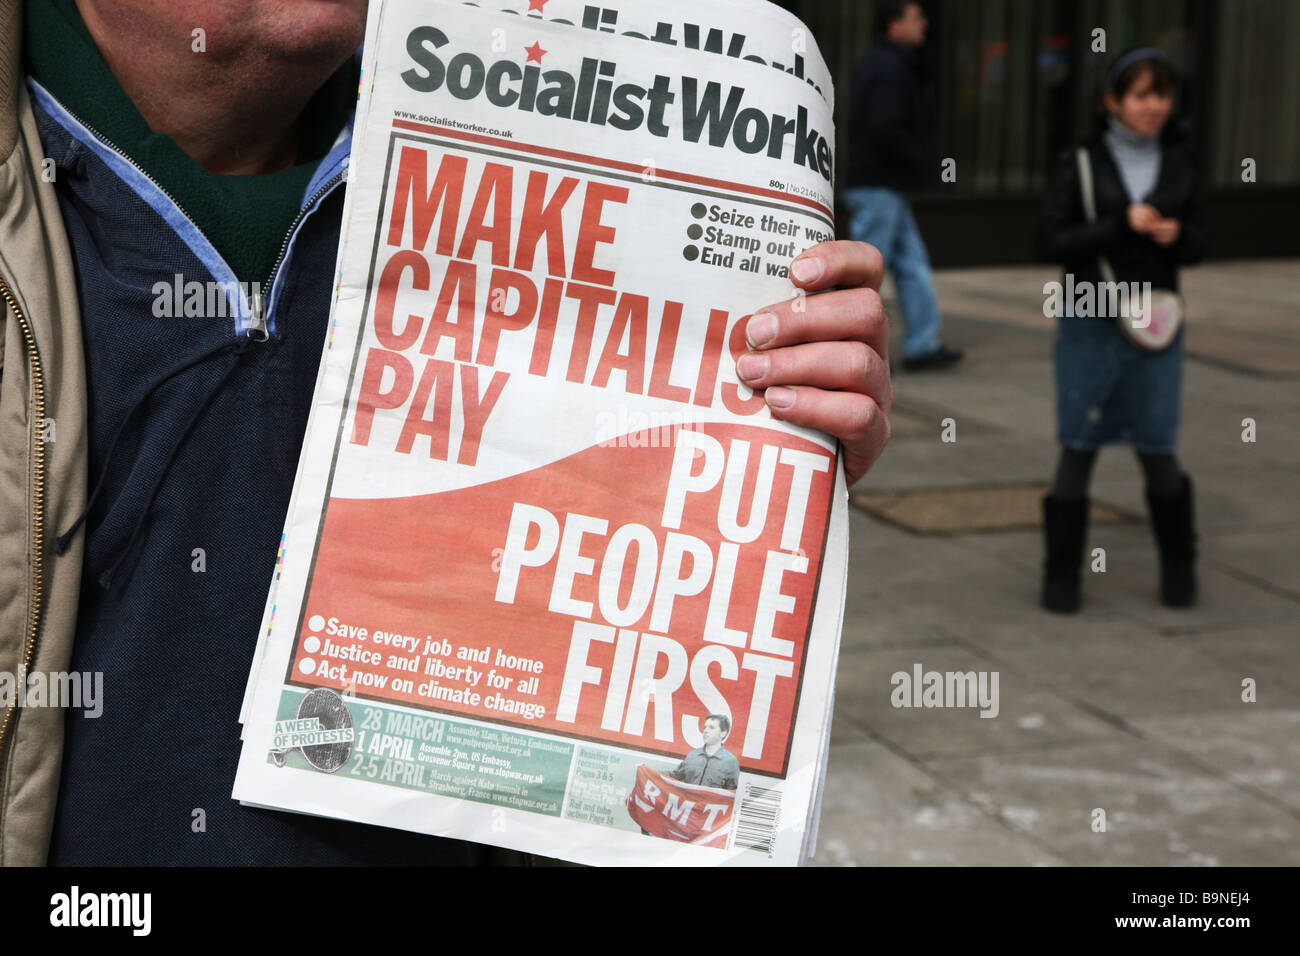 The socialist worker newspaper, headlines. - Stock Image